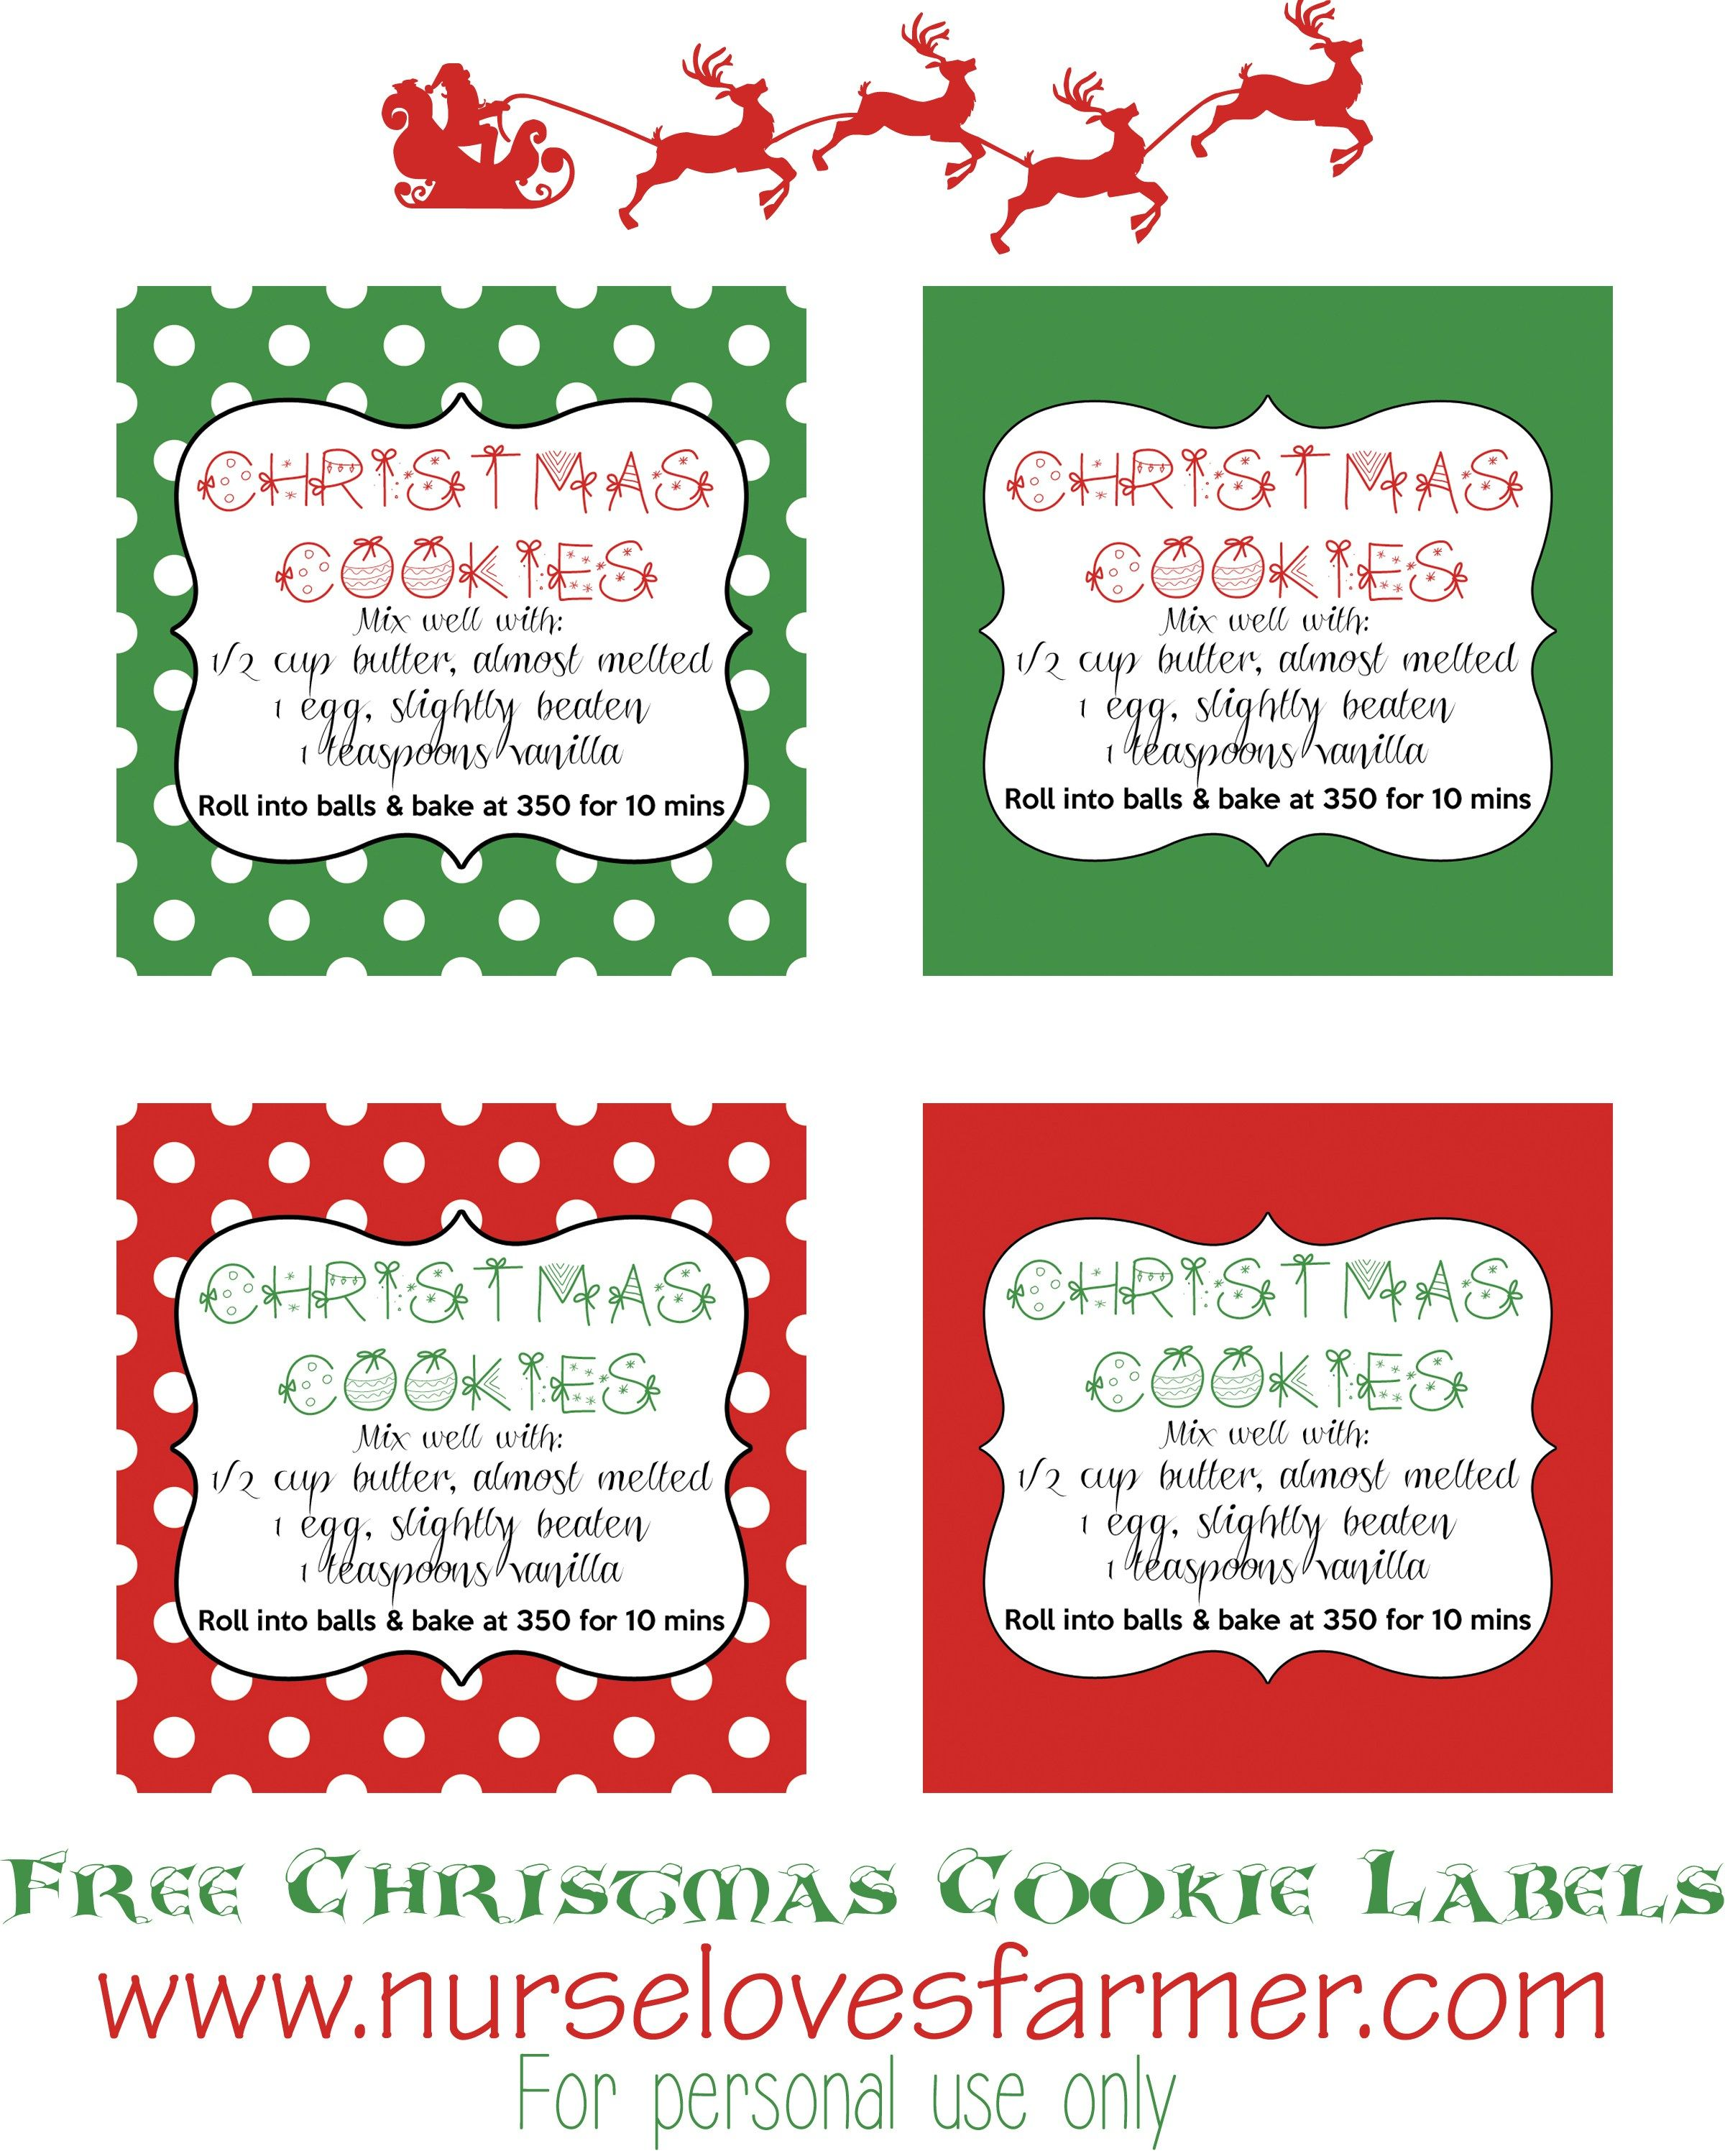 Christmas Cookies In A Jar Nurse Loves Farmer Recipe Cookie Jar Gifts Christmas Cookies Packaging Christmas Printable Labels